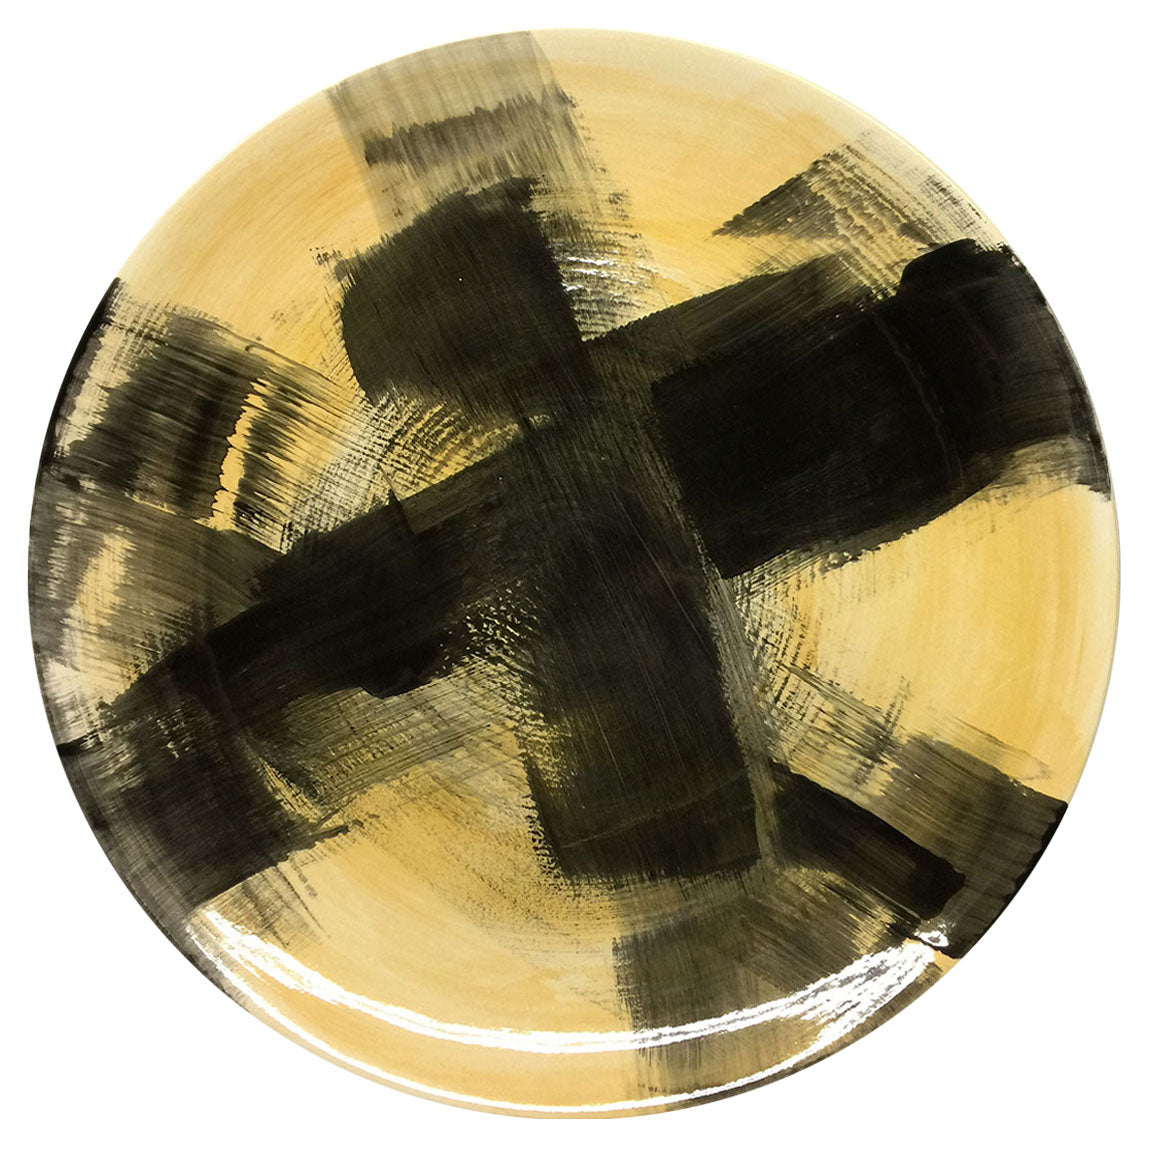 PLATTER #23 - BLACK, GREY, BLUE & CHARTREUSE - HAND-PAINTED EARTHENWARE